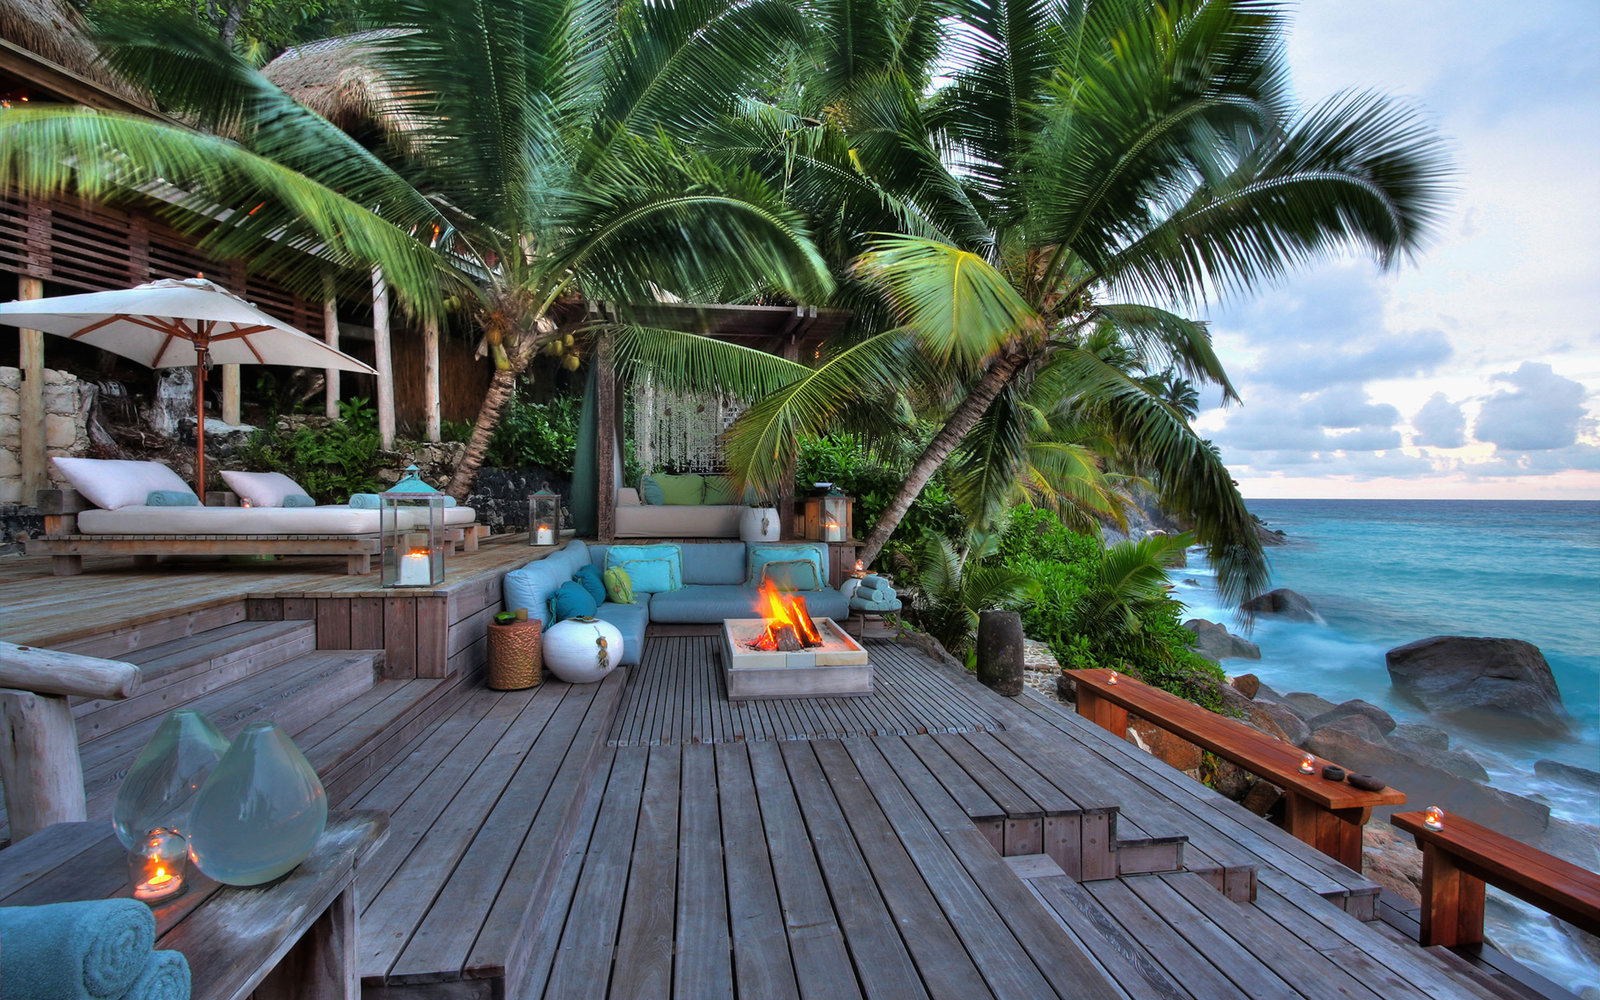 North Island - Indian Ocean Seychelles